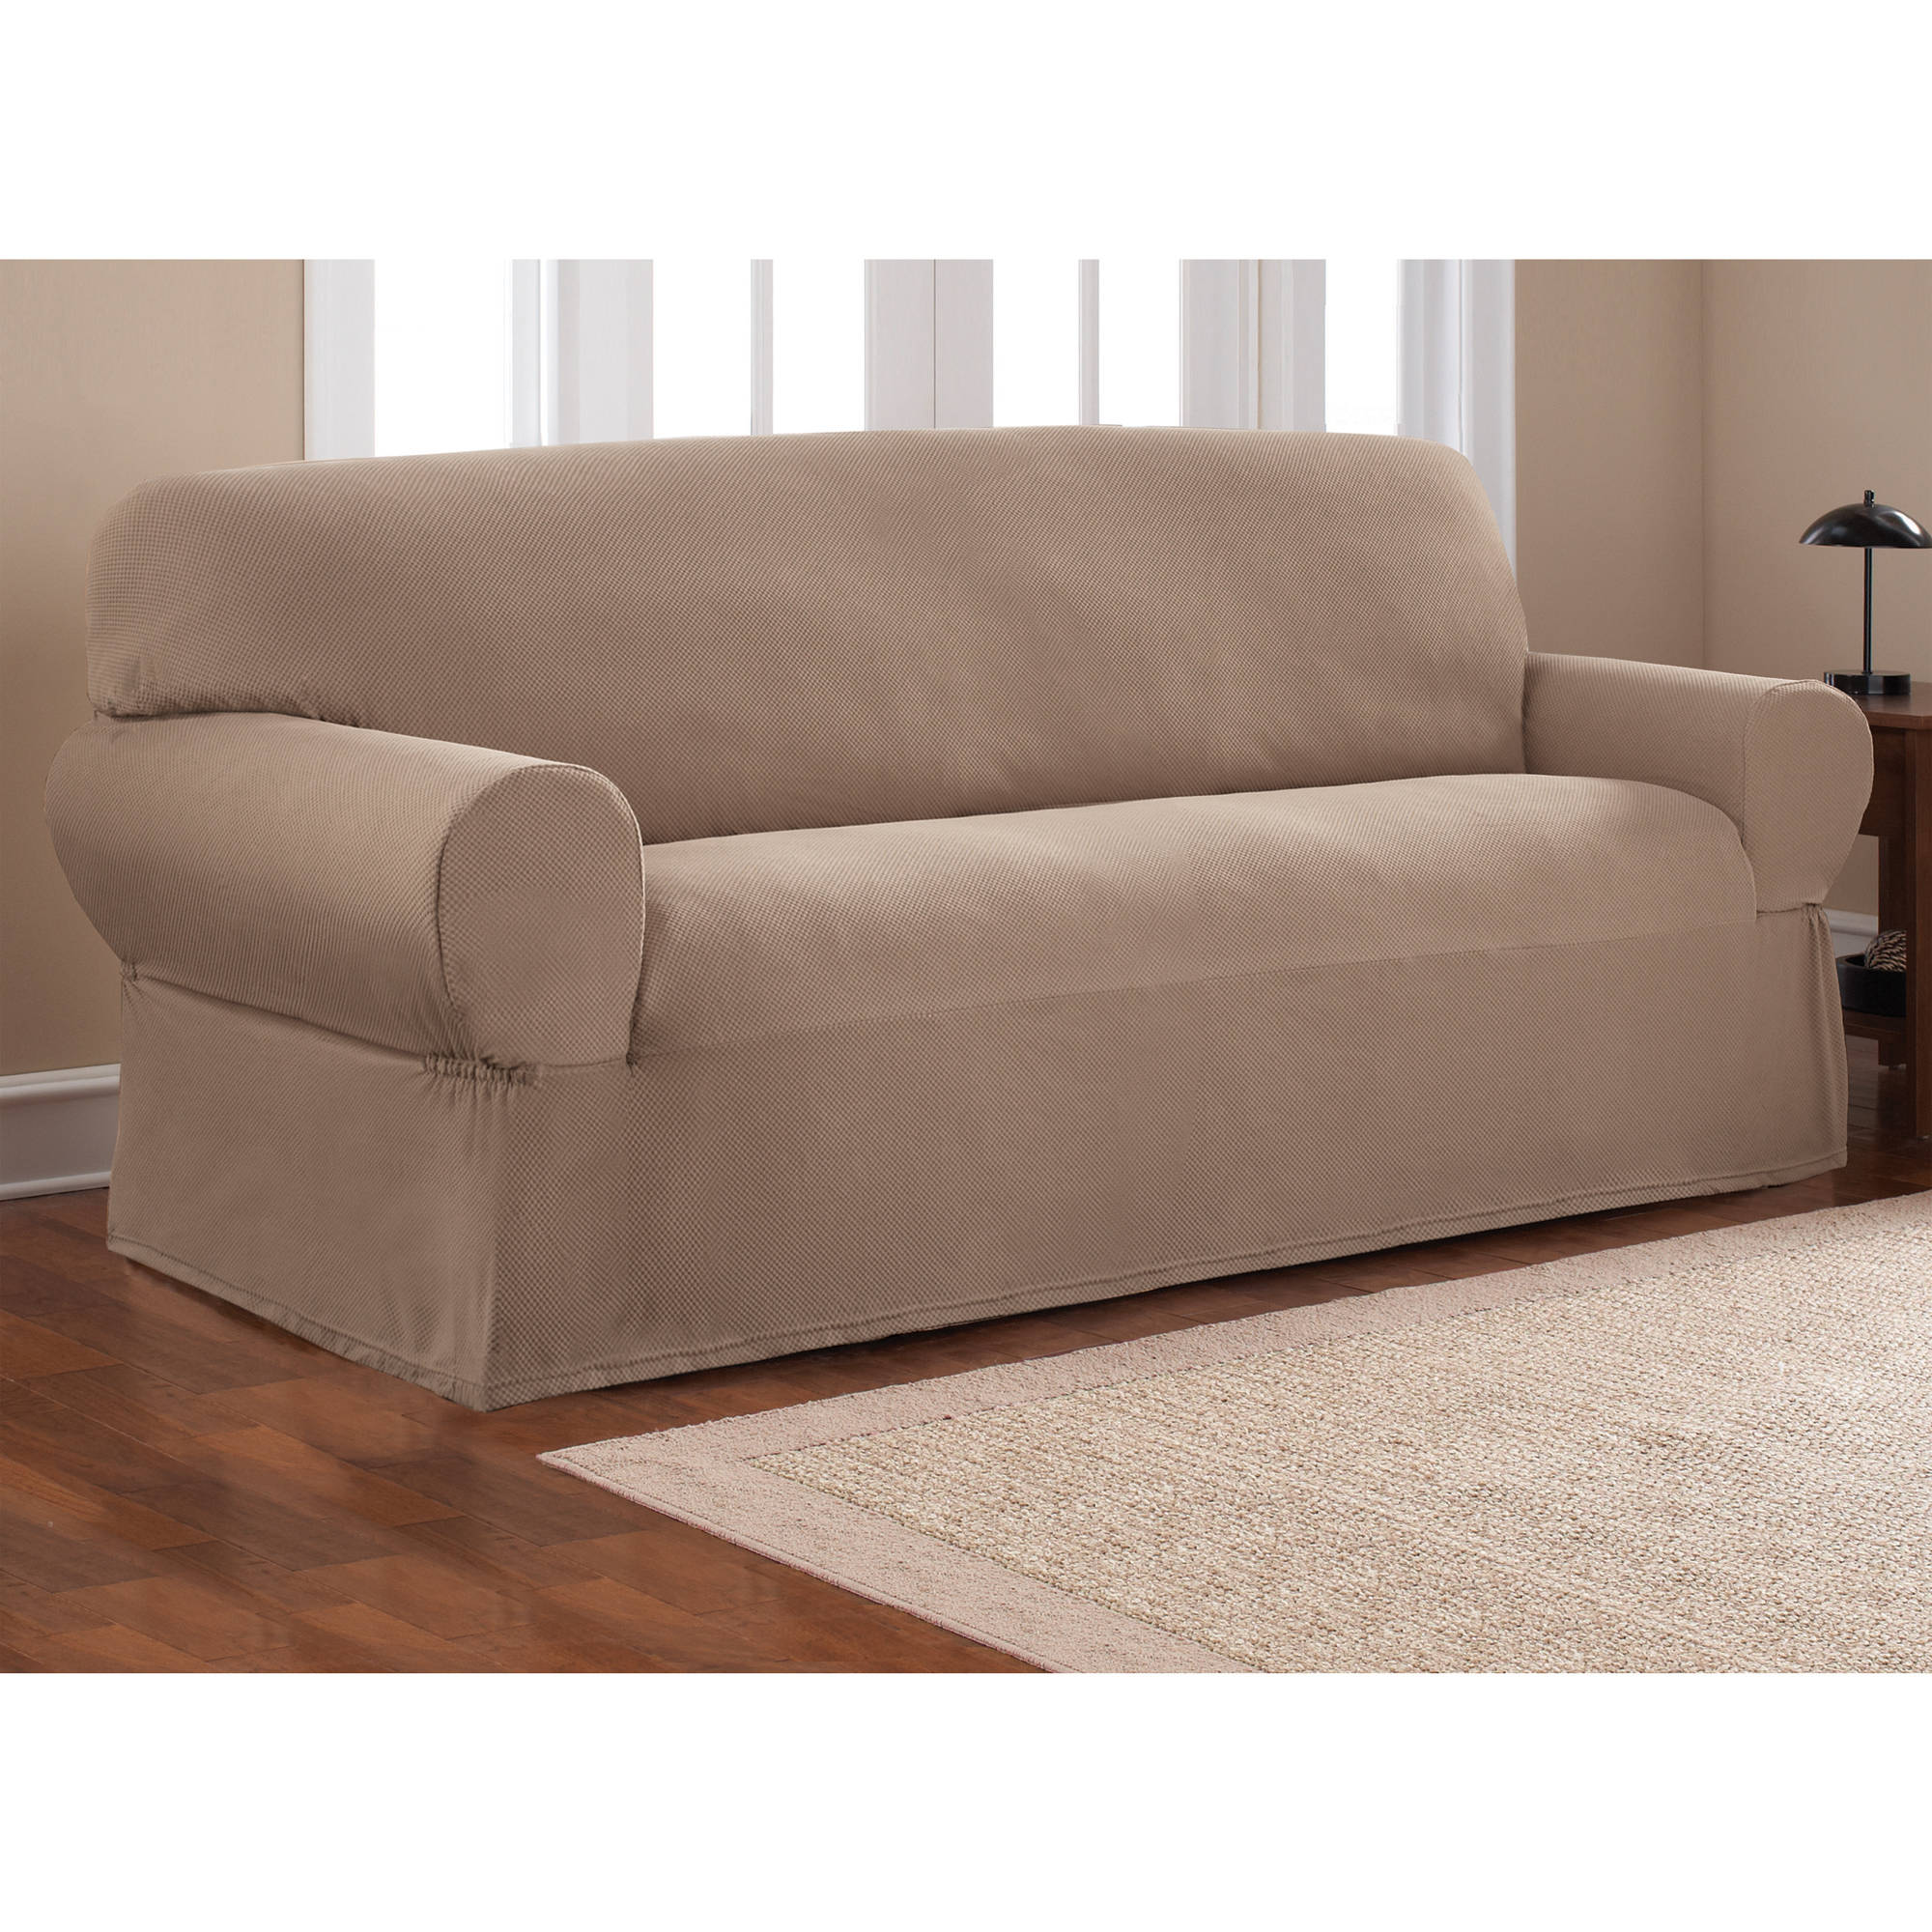 Furniture & Rug Slipcovers For Sofas With Cushions Separate